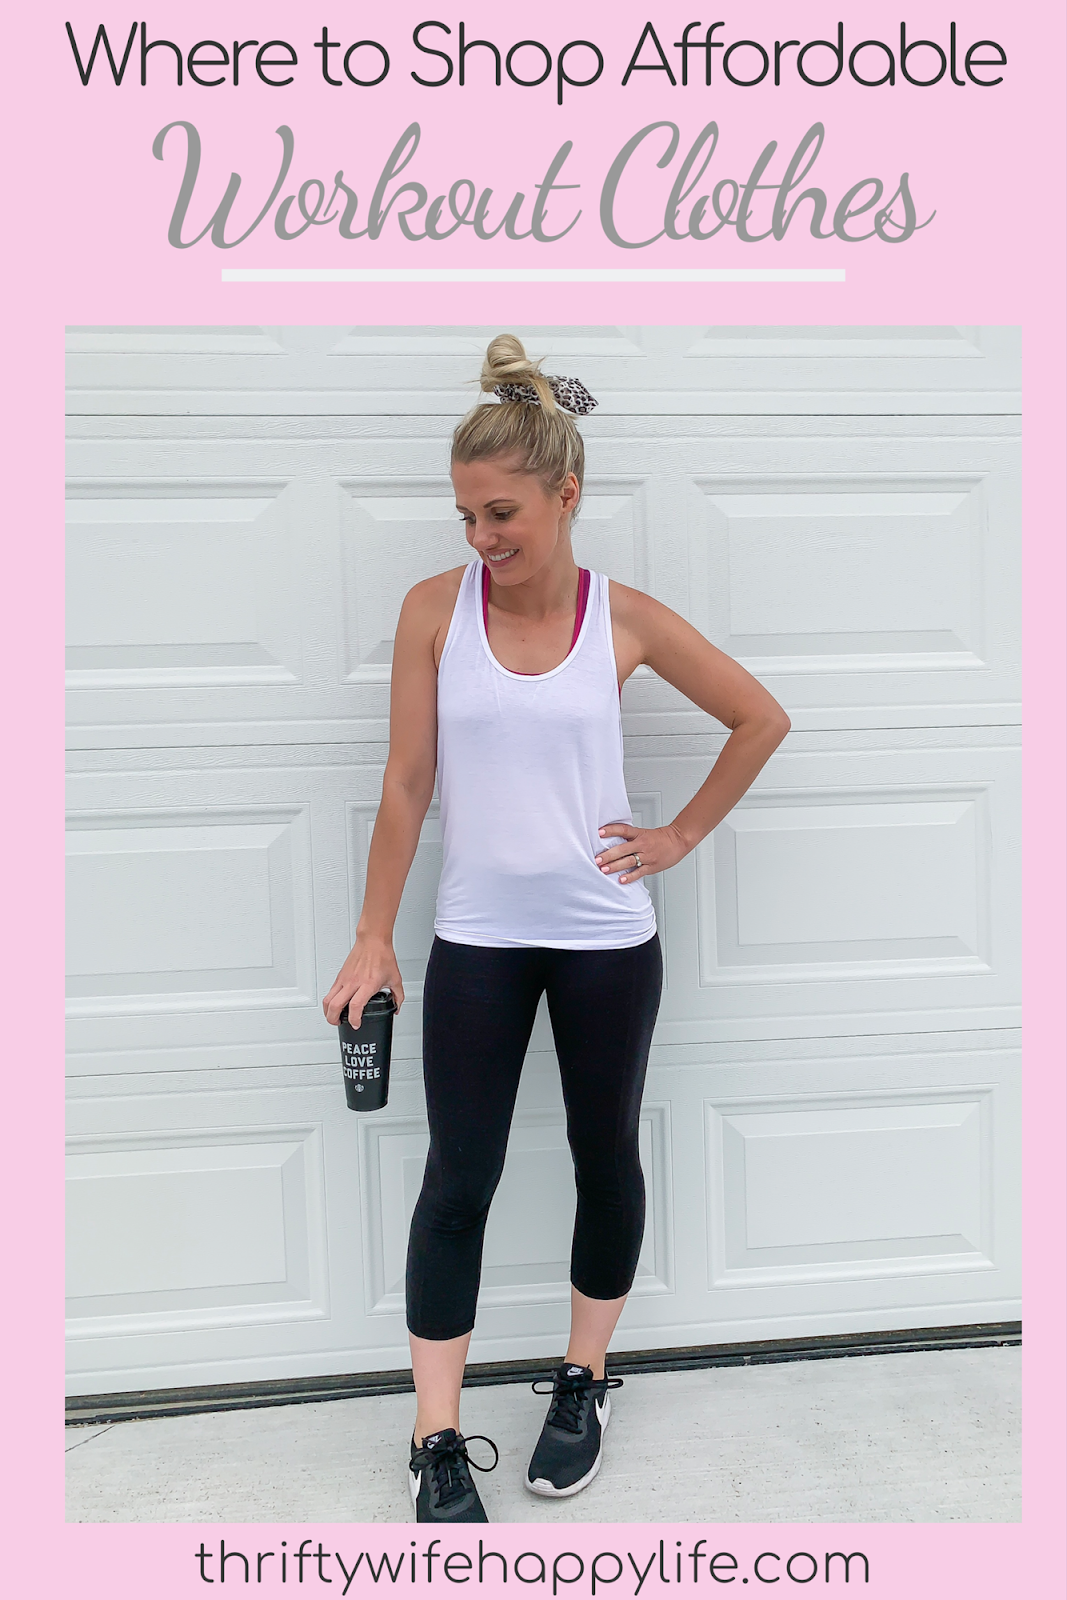 Where to shop affordable workout clothes